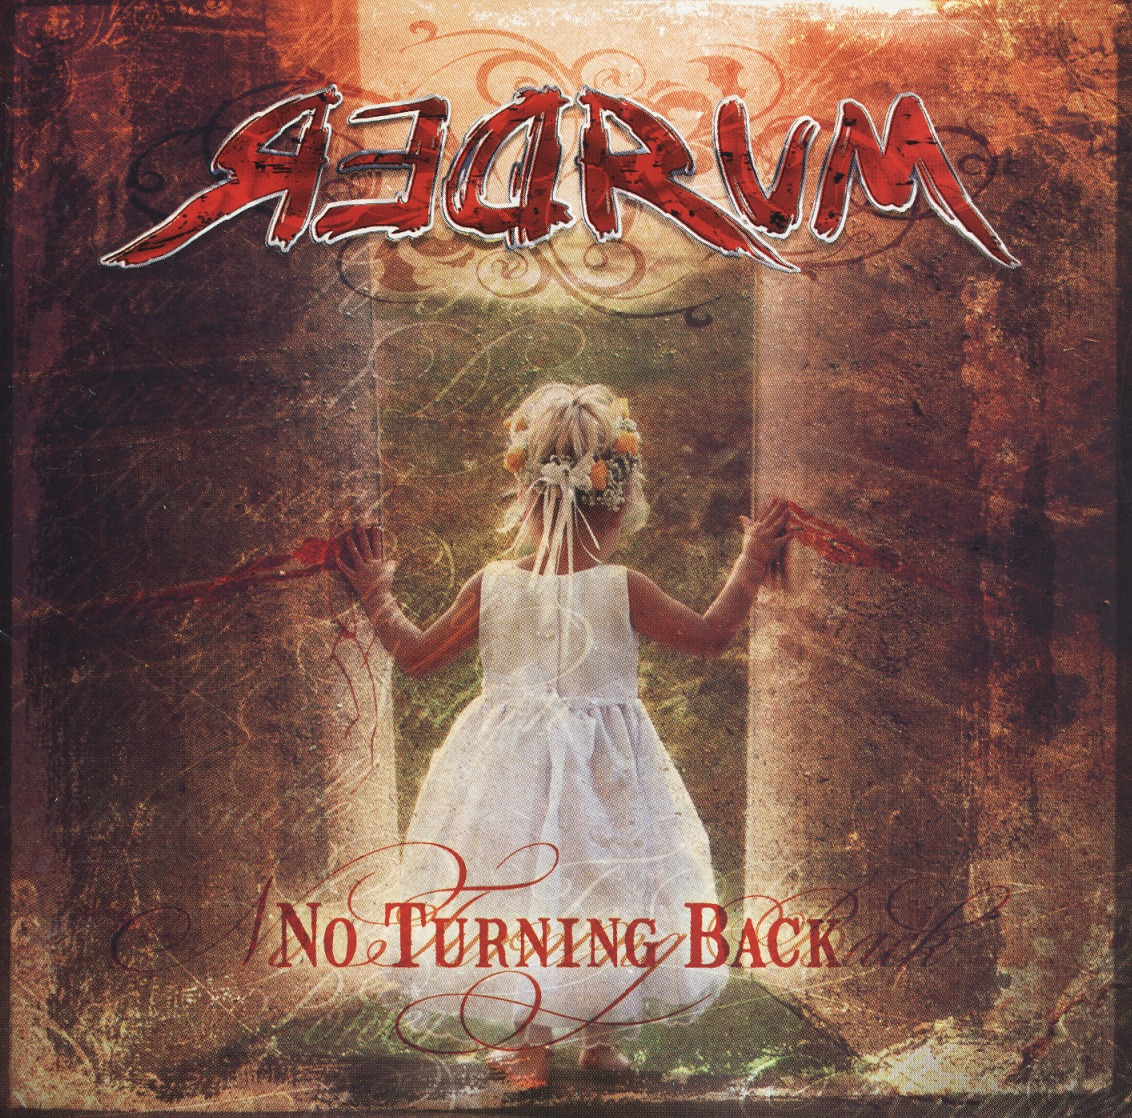 REDRUM (Greece) / No Turning Back (2015 reissue with remastered sound)